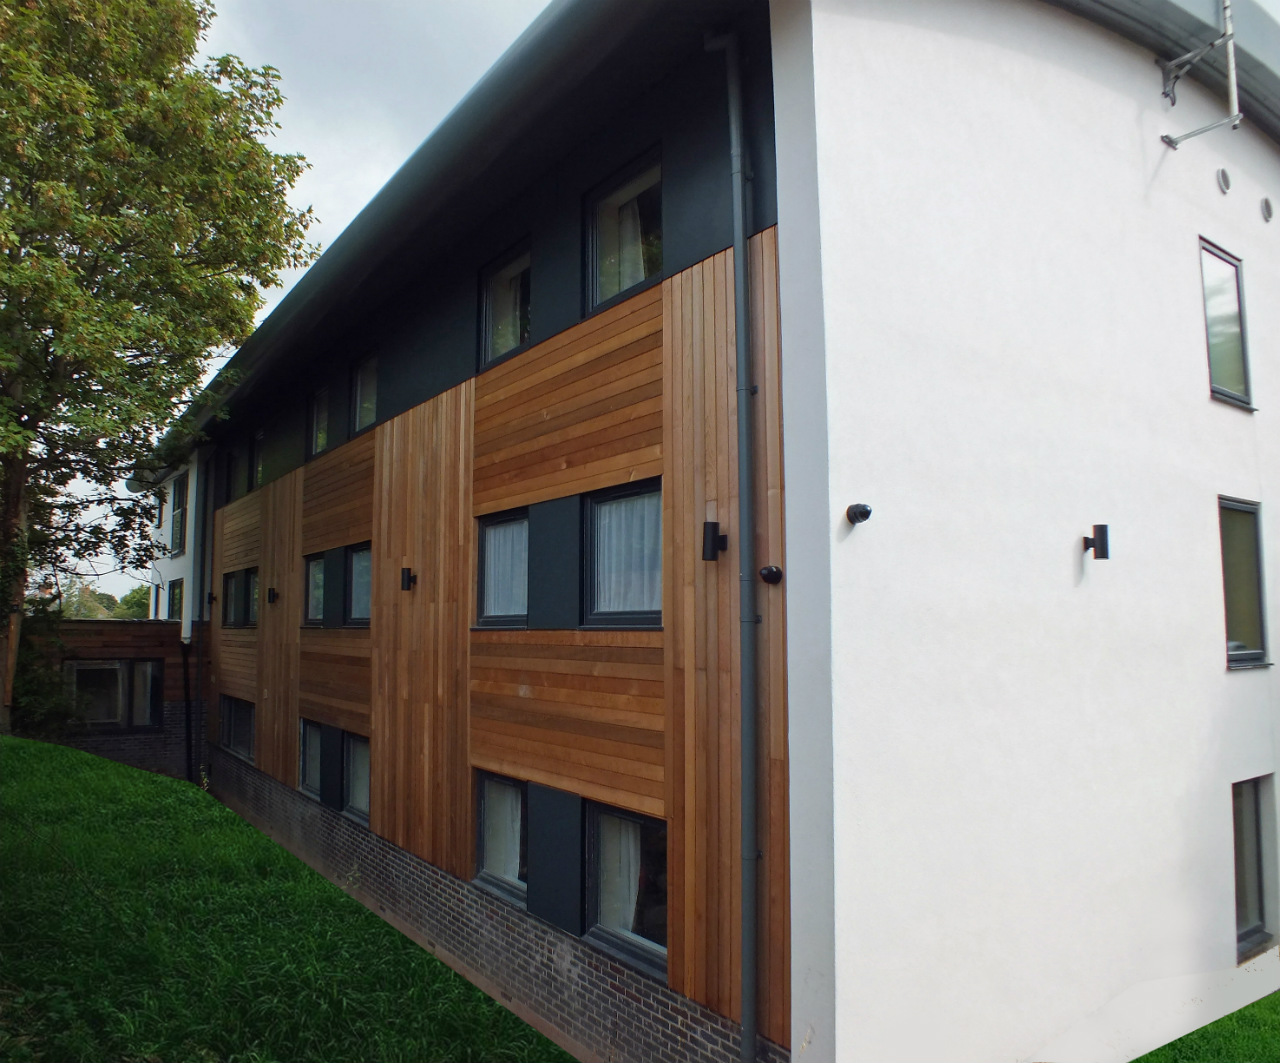 Exterior of Room at Cadnam Hall student accommodation in Birmingham